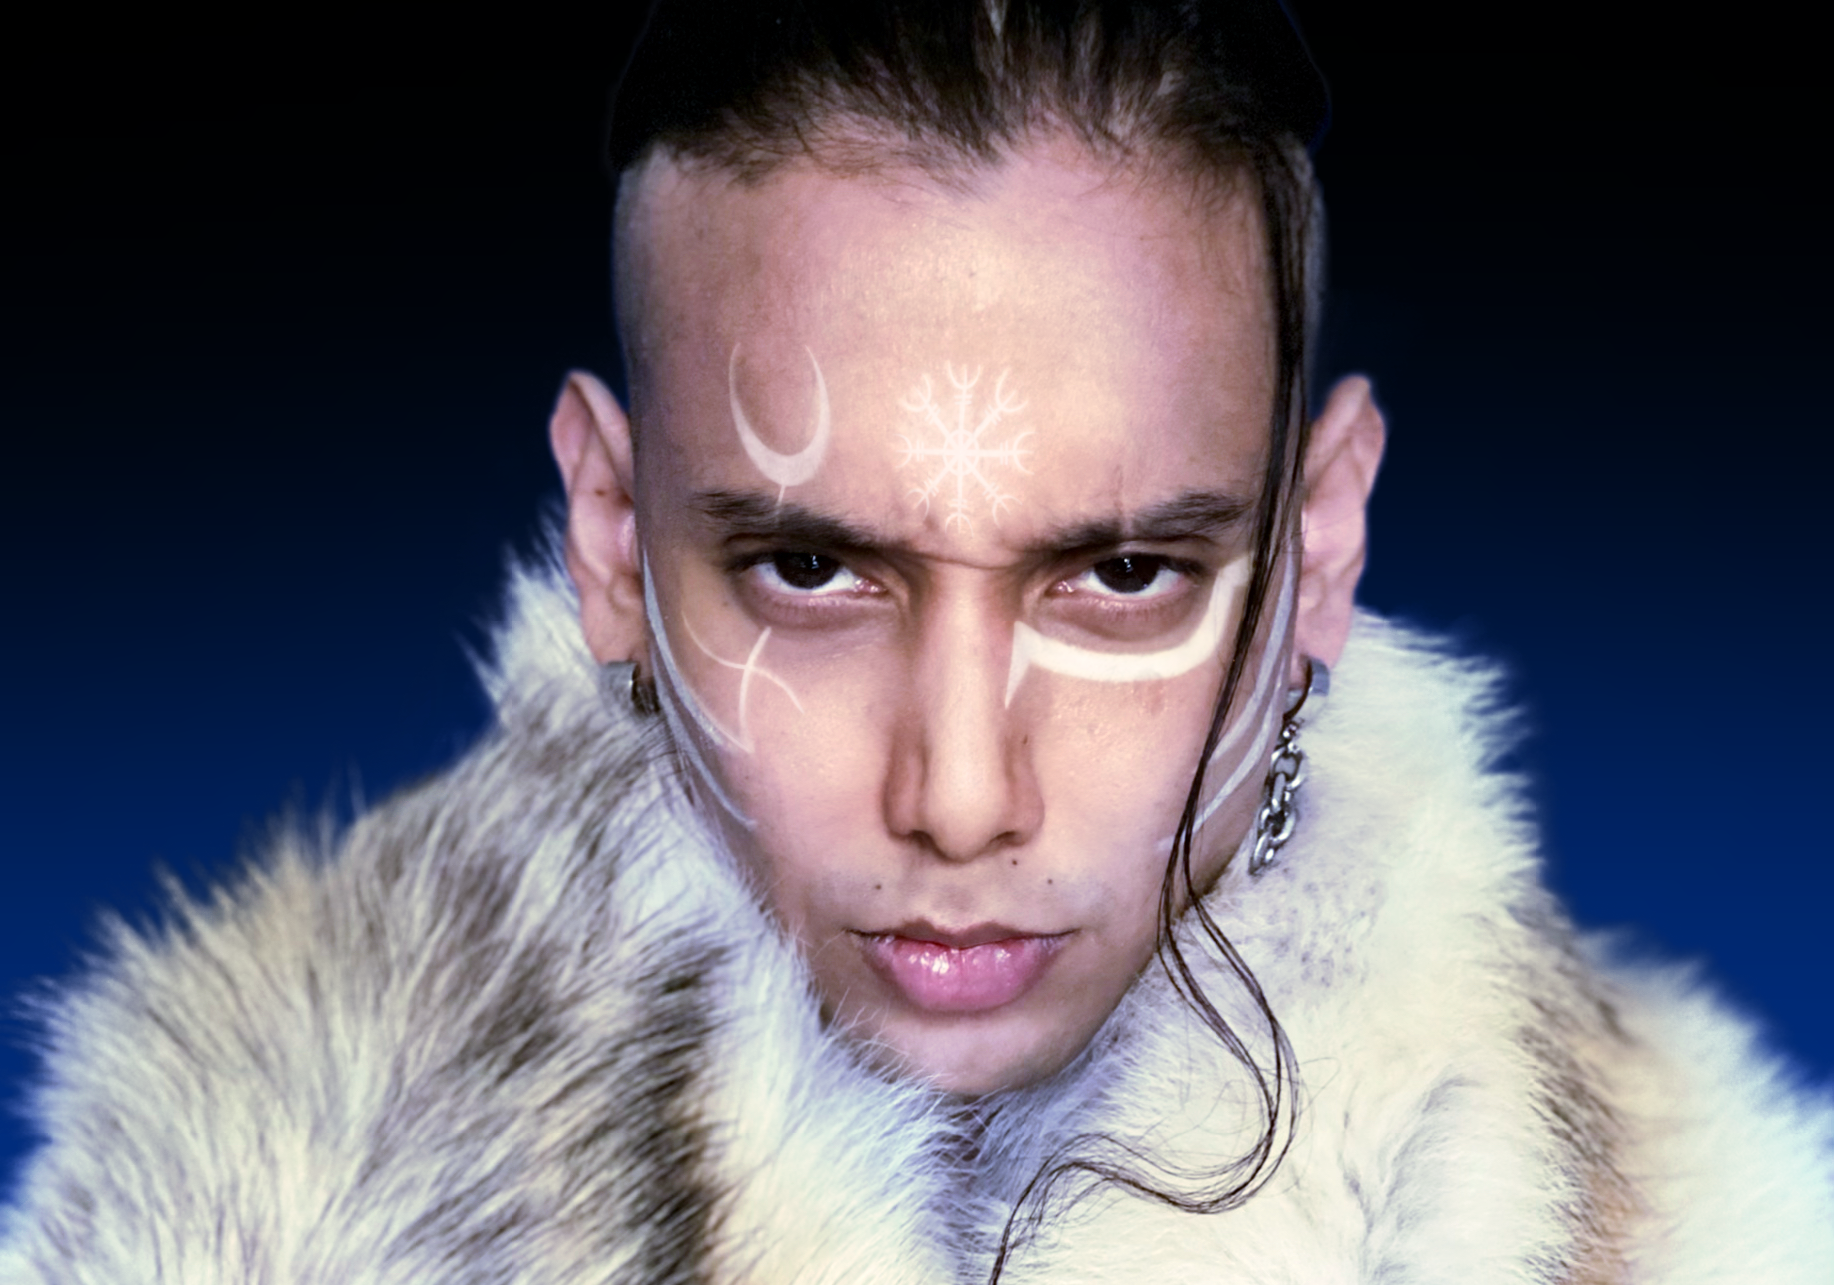 Fenzrir: The Bronx Rock-Rapper Bending Hip-Hop Subgenres to Create His Own Musical Soundscapes